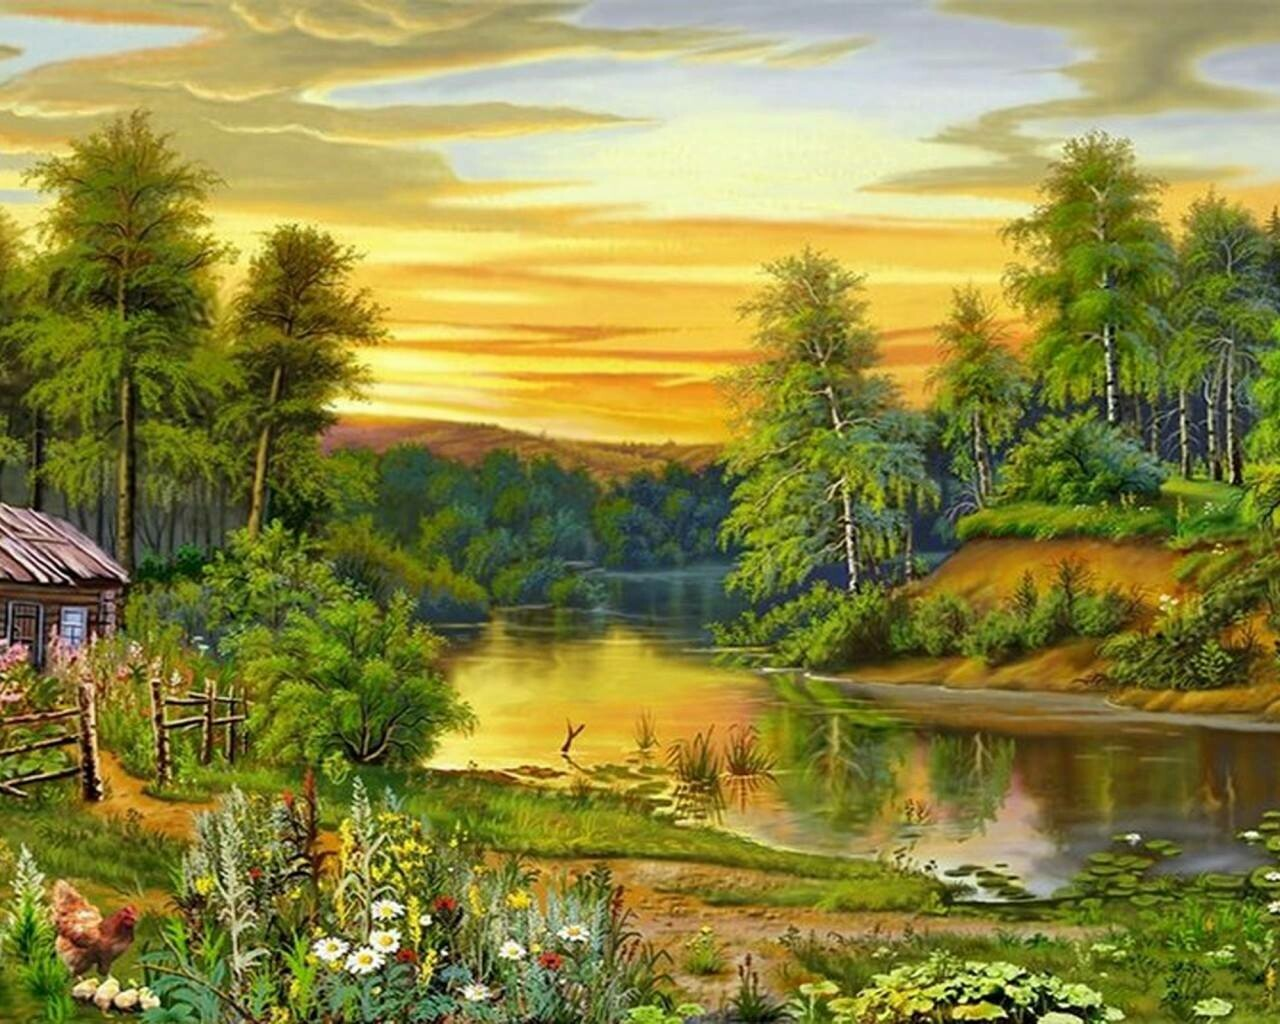 Scenery Artwork 06 - Full Drill Diamond Painting - Specially ordered for you. Delivery is approximately 4 - 6 weeks.